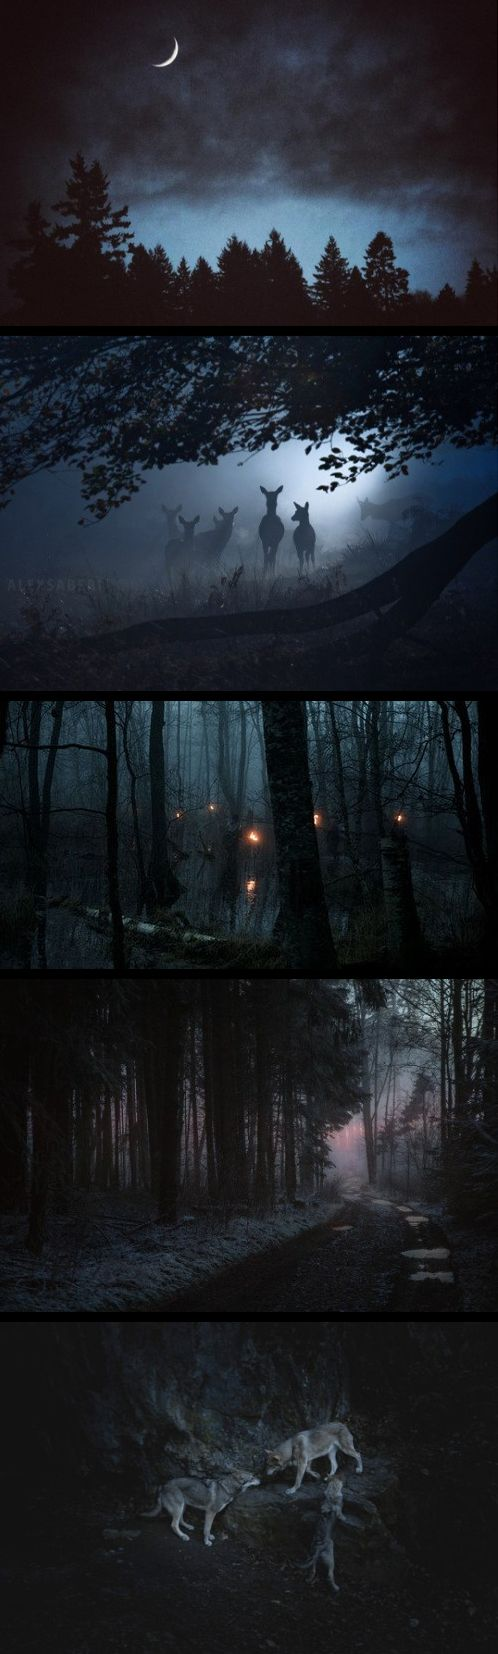 The woods.